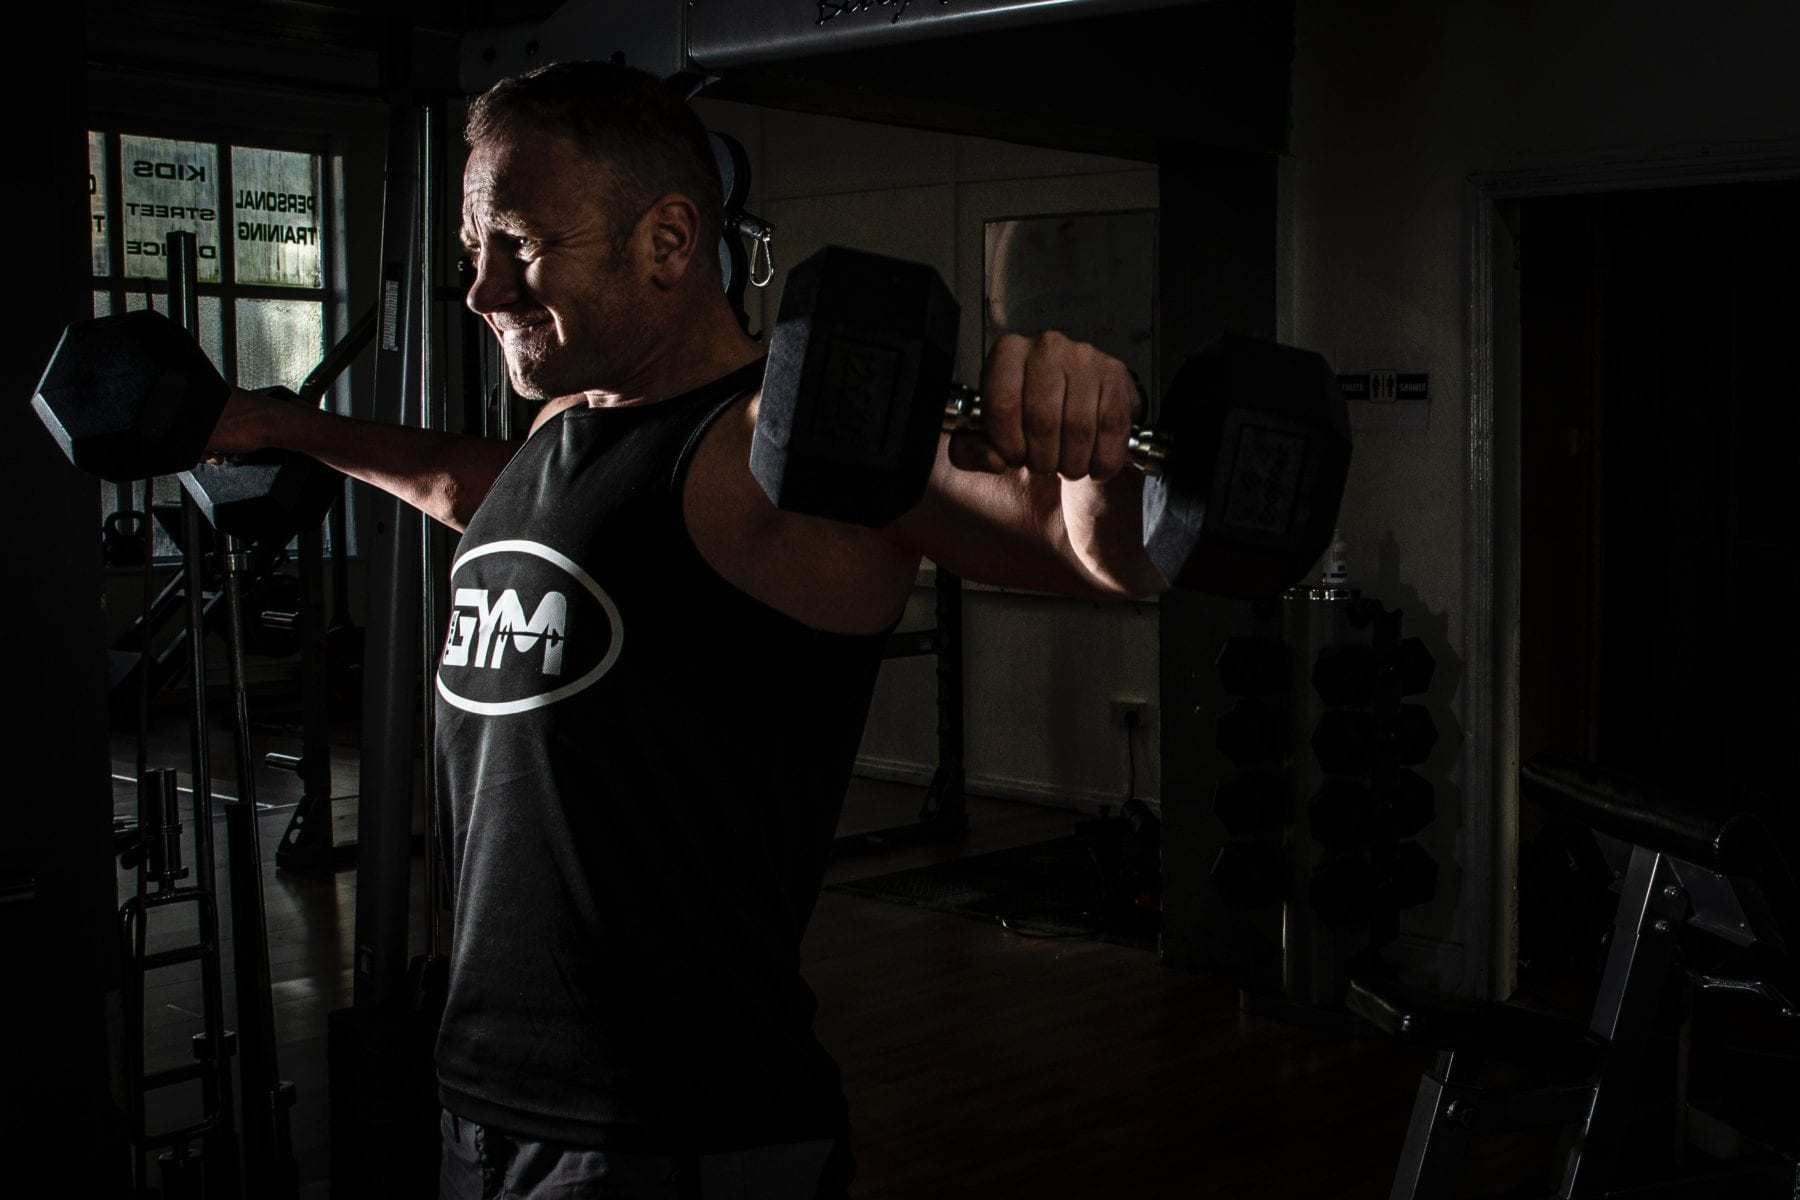 man lifting dumbells against a dark background